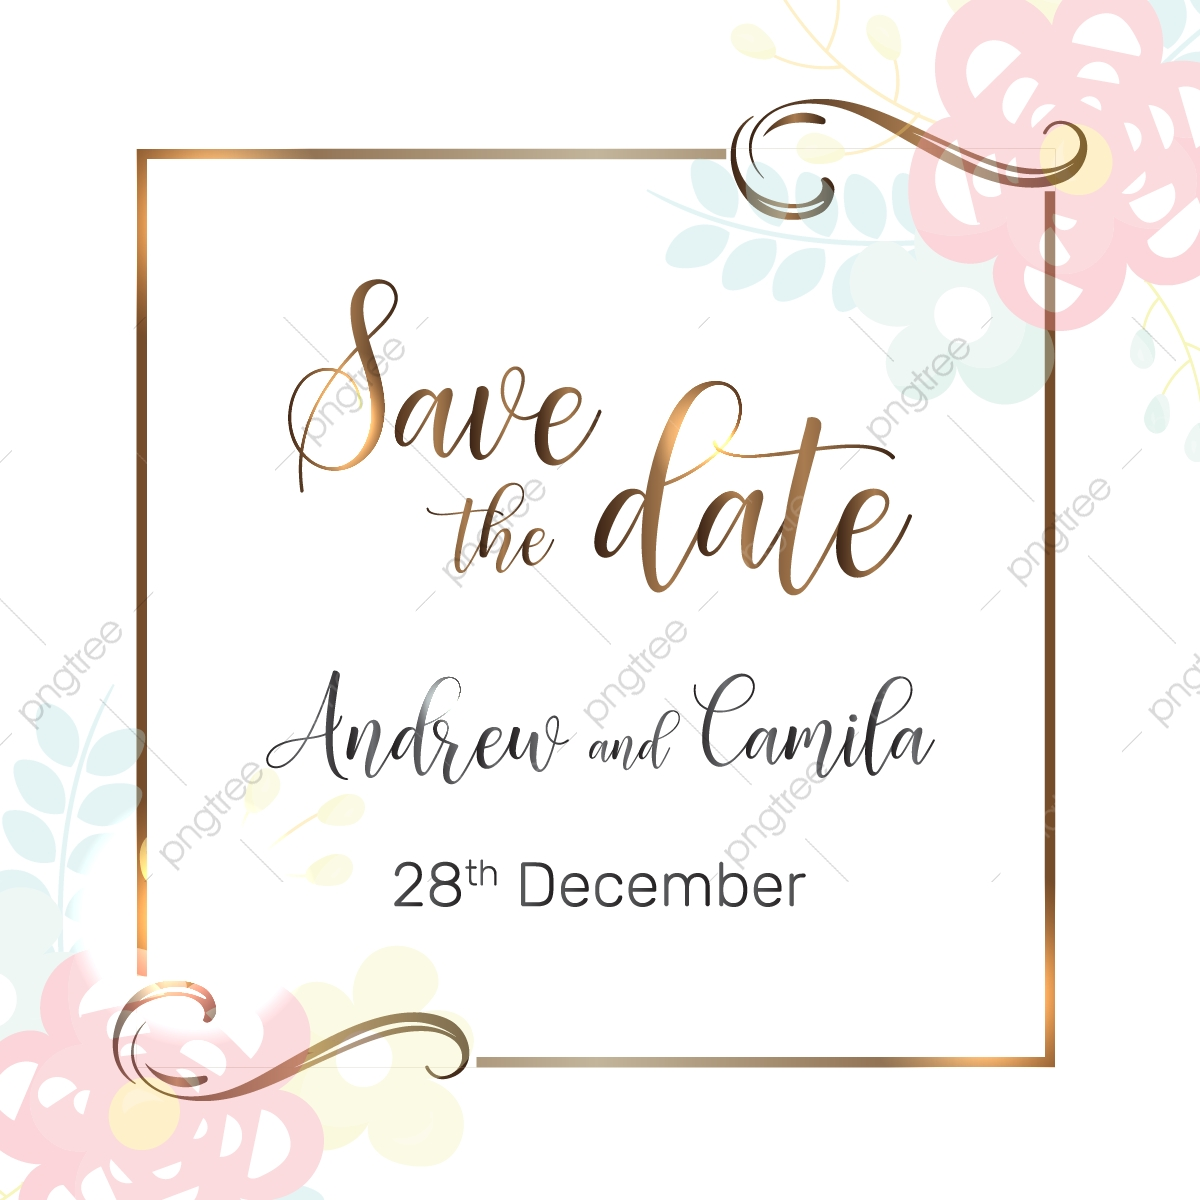 Beautiful Save The Date Wedding Invitation Template.